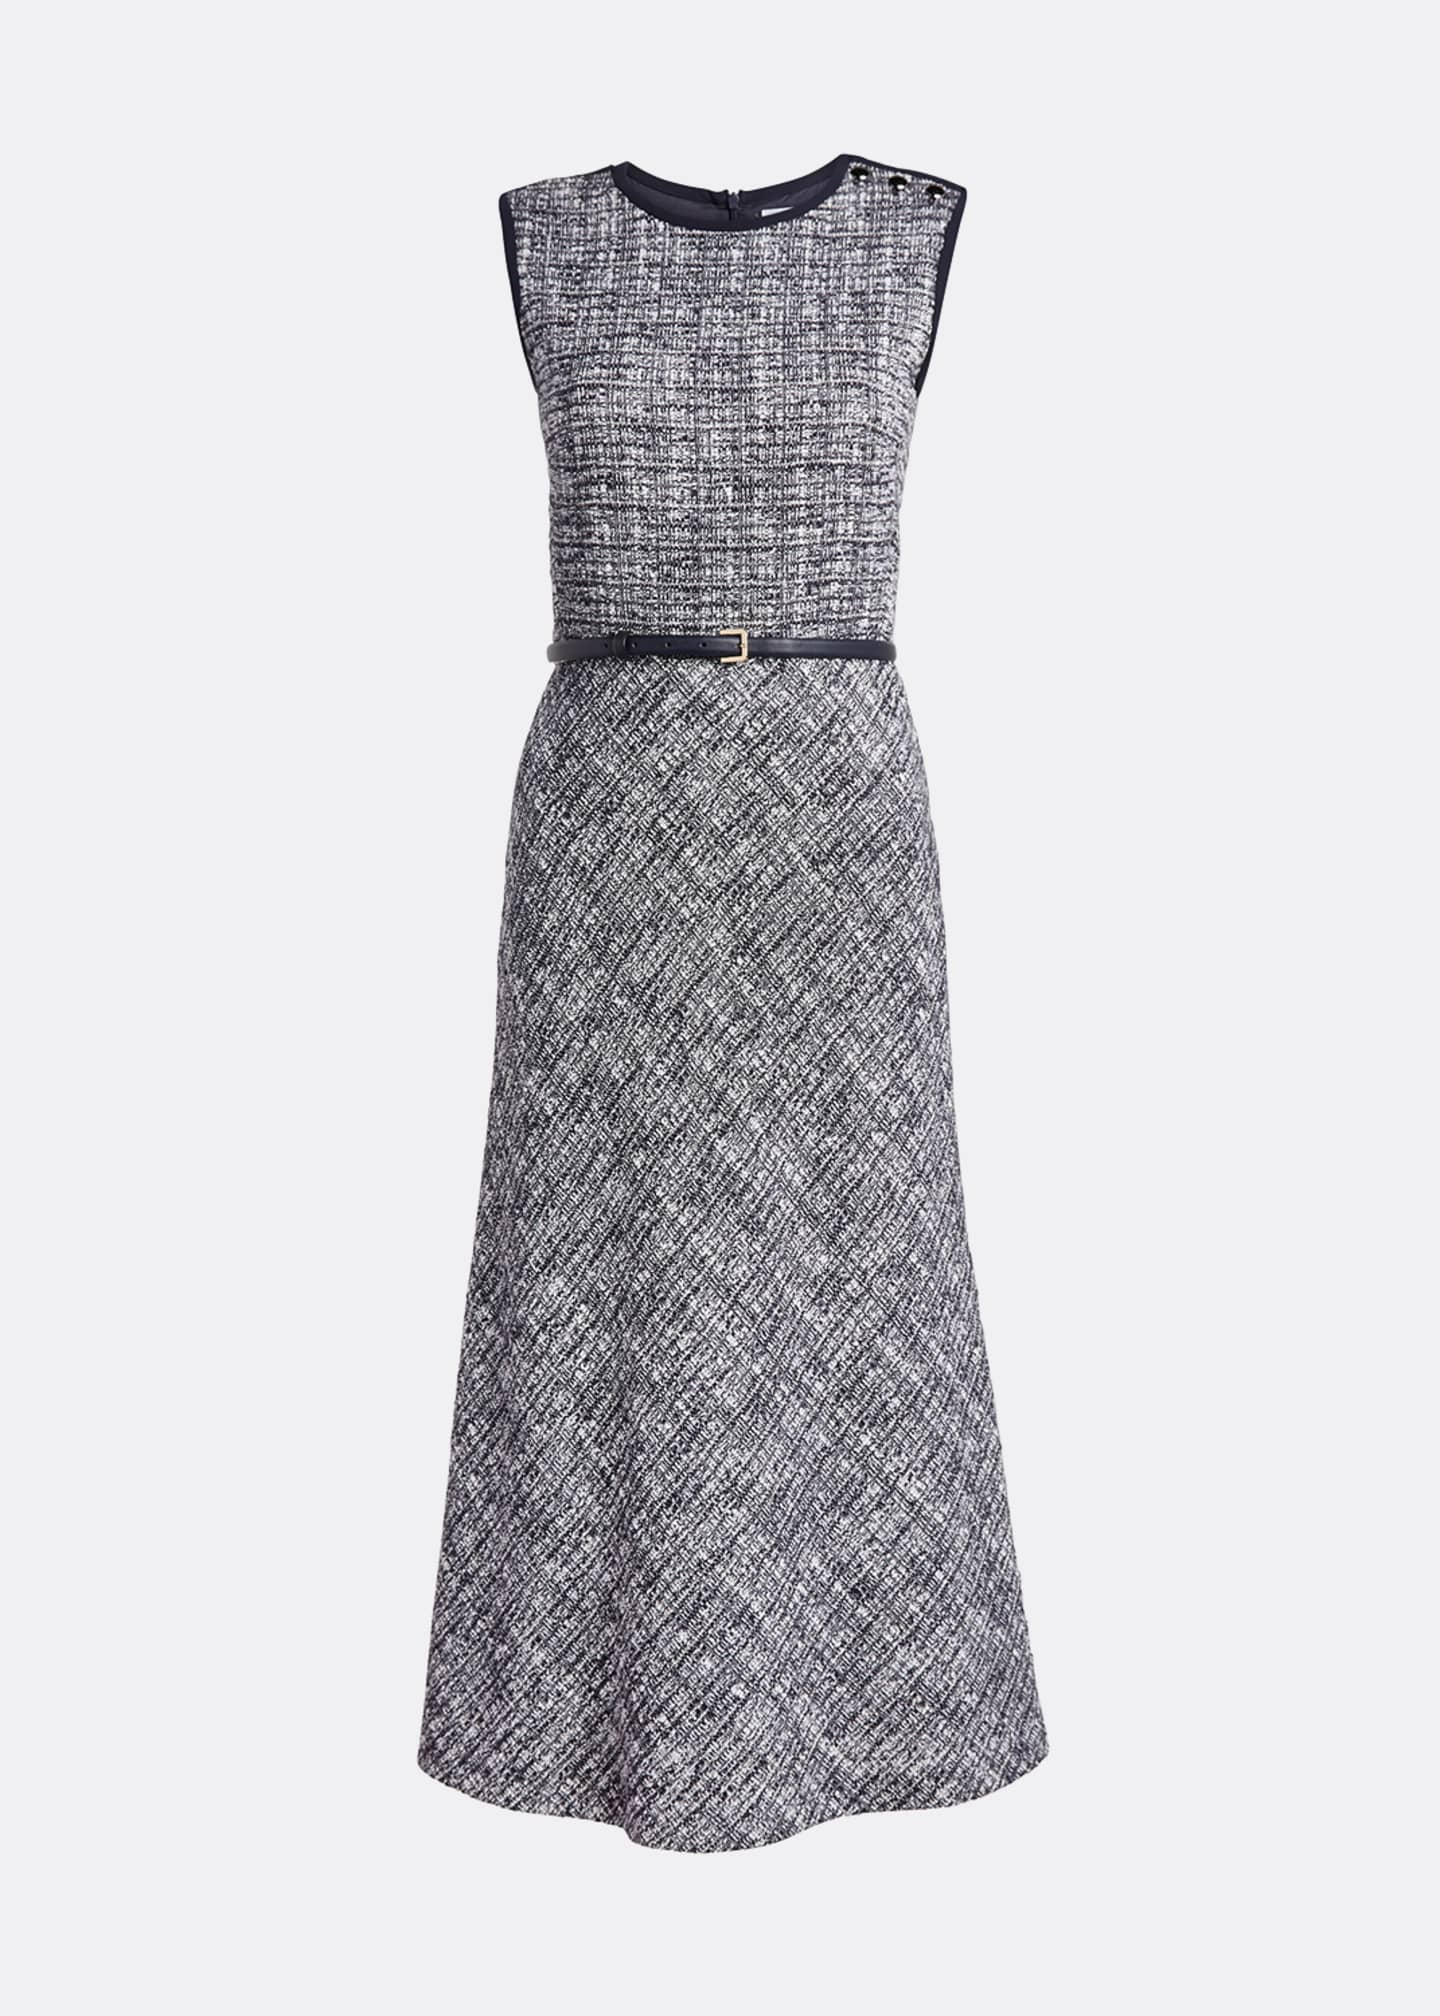 Image 5 of 5: Spadino Sleeveless Tweed Dress